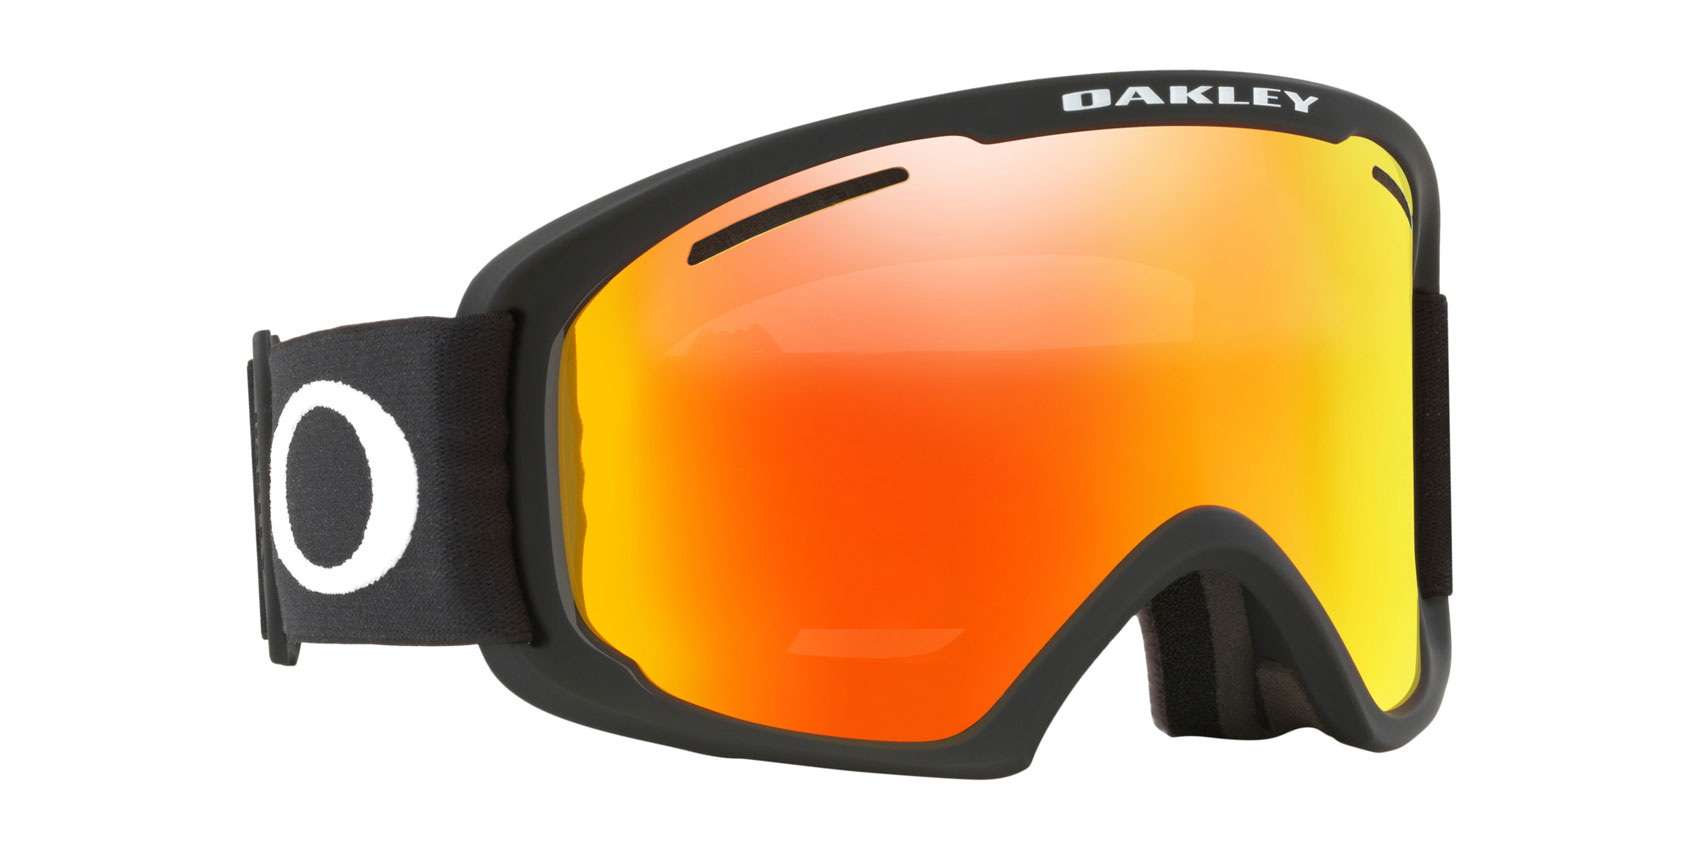 2b2eb5e294 Oakley O Frame 2.0 XM Matte Black Fire Iridium and Persimmon ...